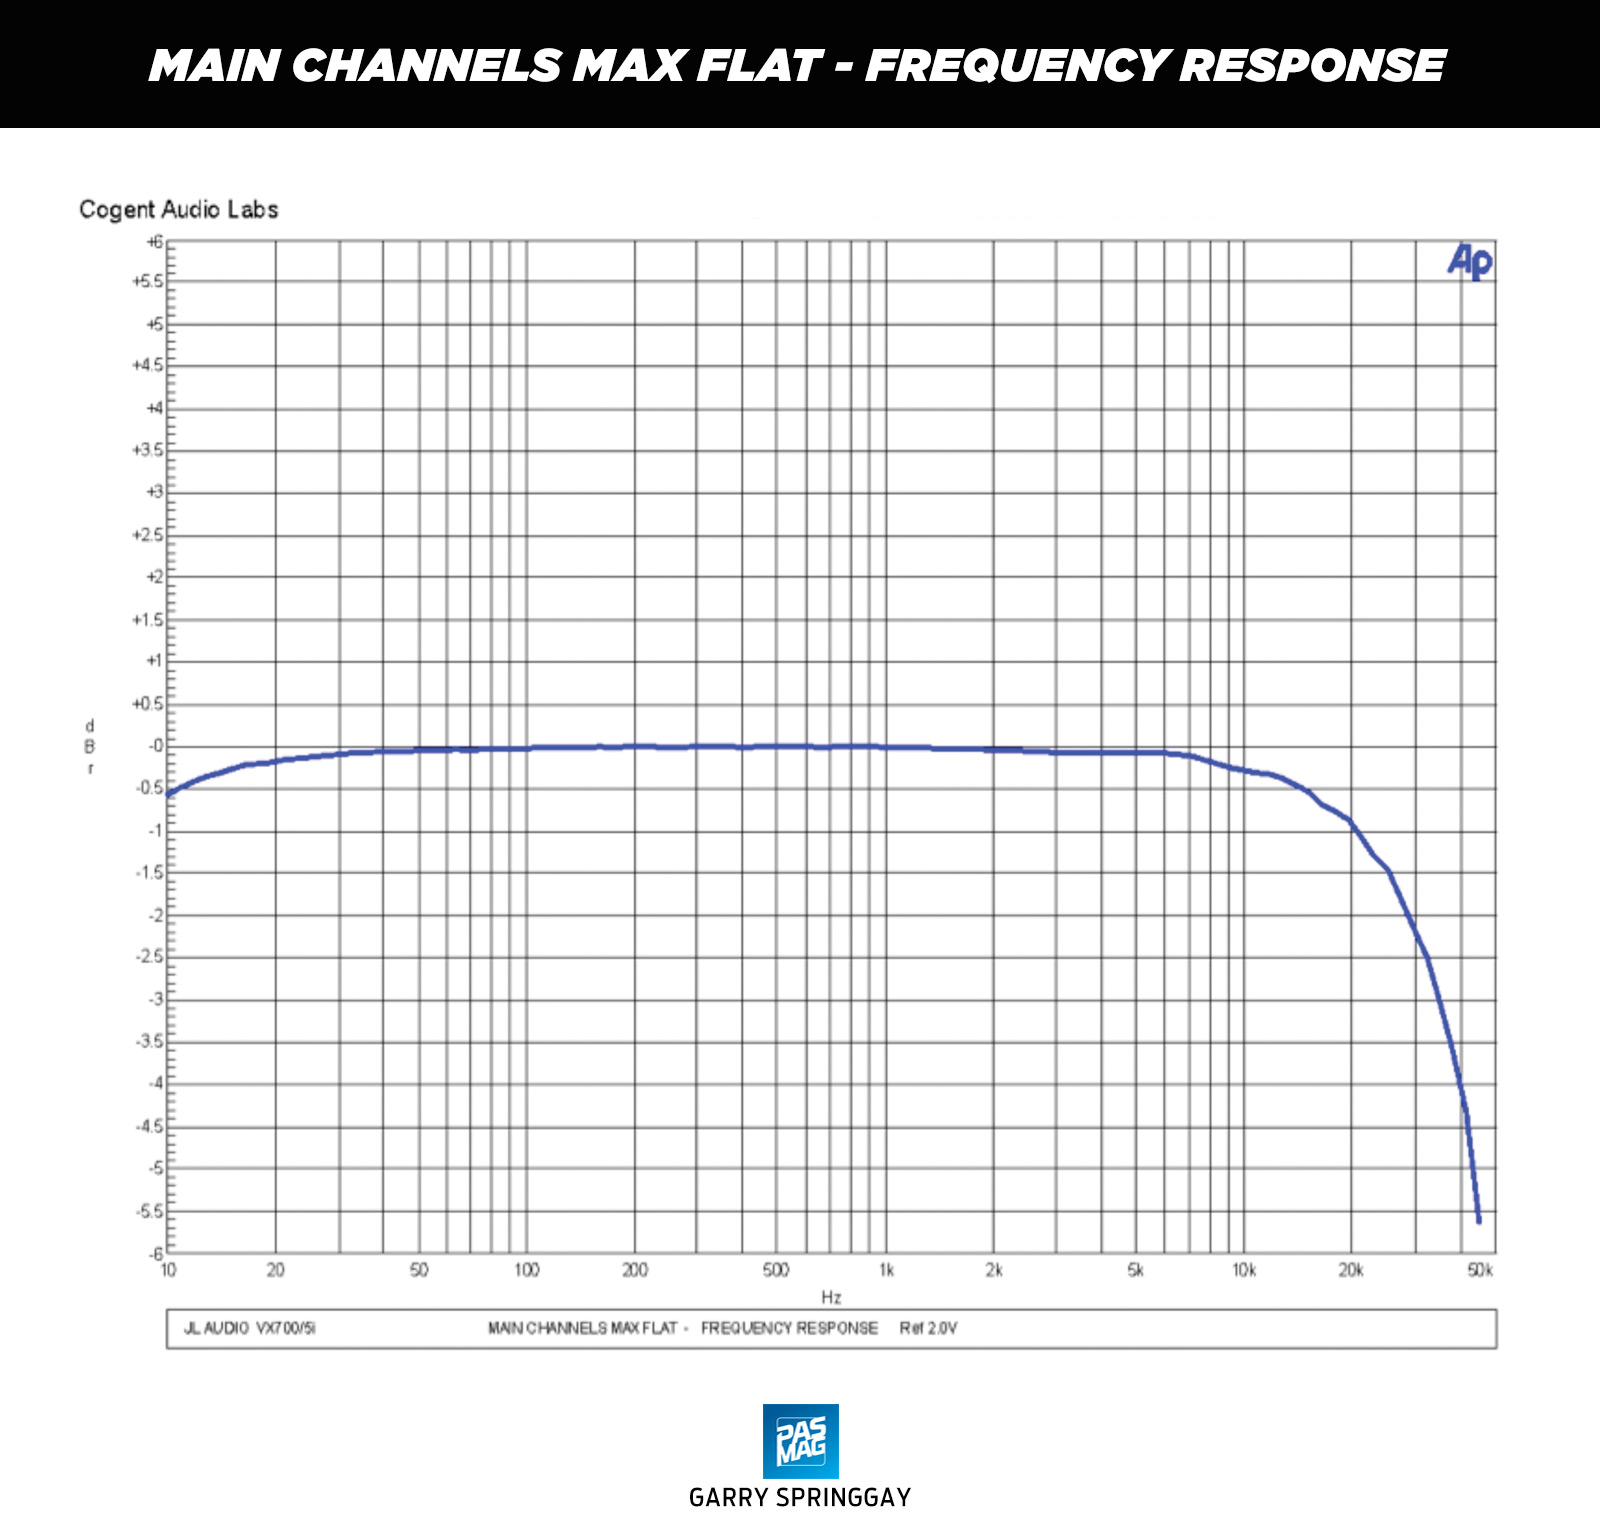 02 JL Audio VX700 5i Chart MAIN CHANNELS MAX FLAT FREQUENCY RESPONSE